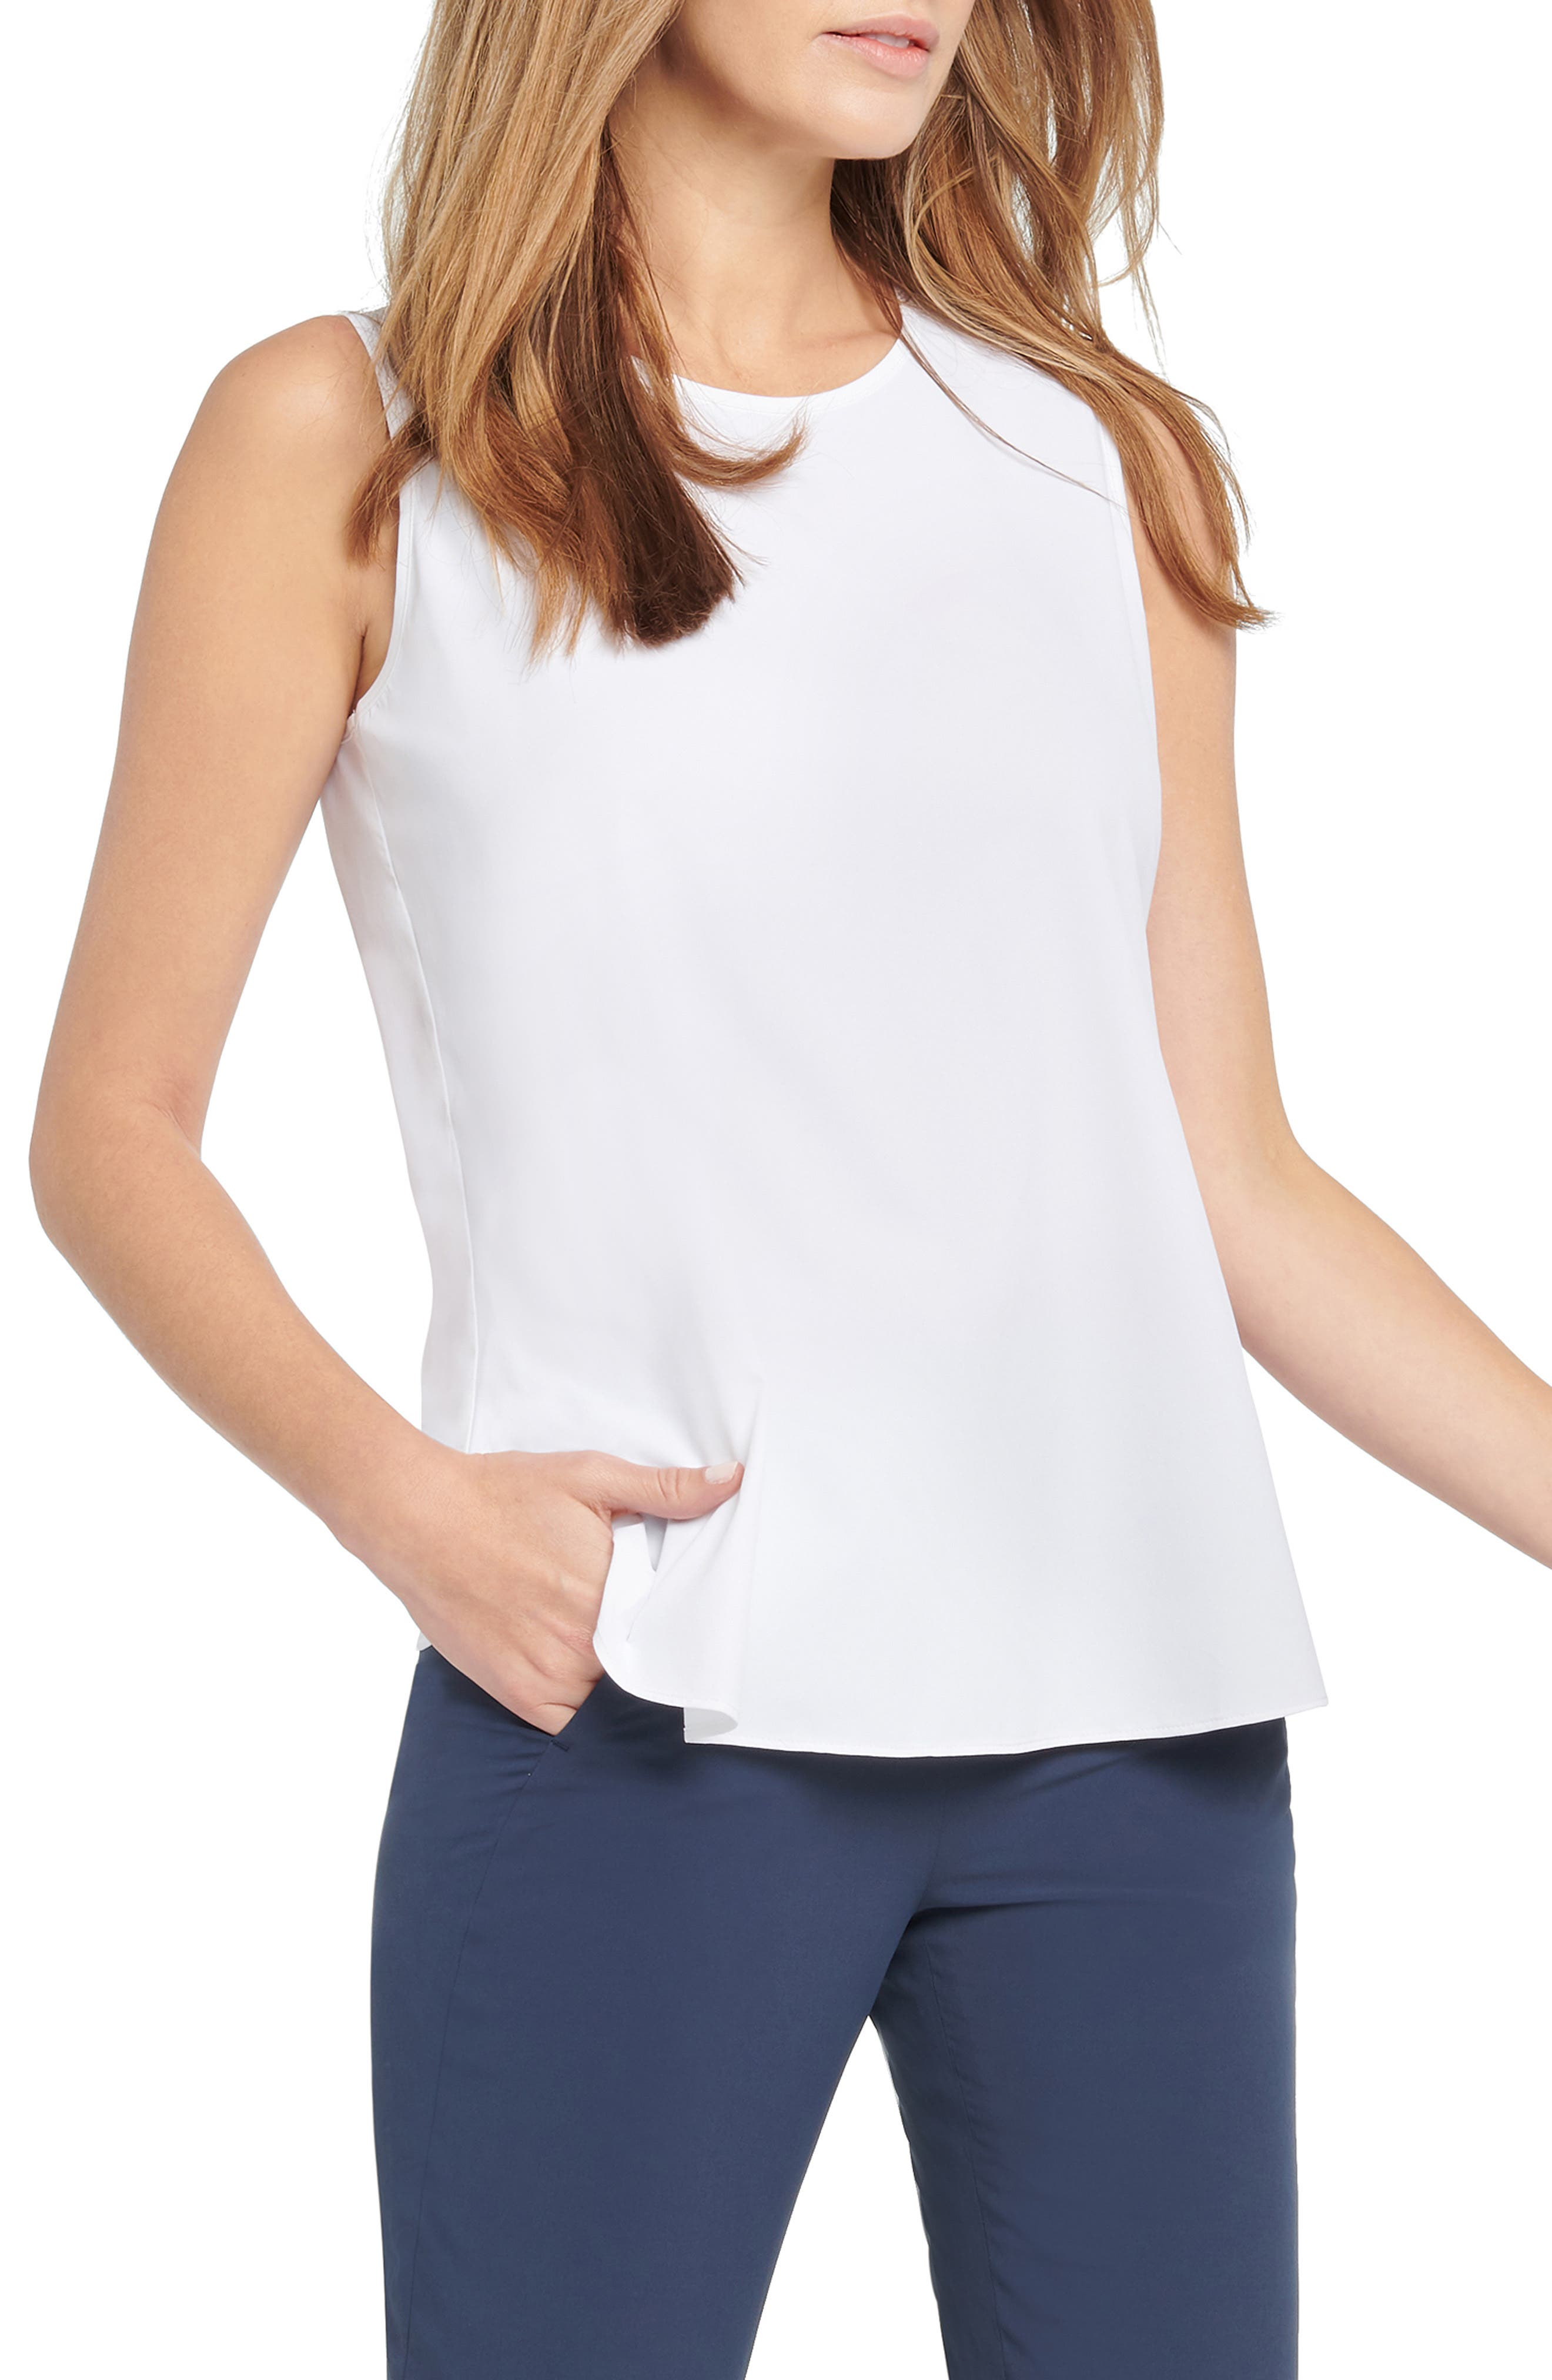 Moisture-wicking four-way-stretch fabric adds everyday comfort to this smooth, lightweight and versatile tank. Style Name: Nic+Zoe Tech Stretch Tank. Style Number: 6098645. Available in stores.